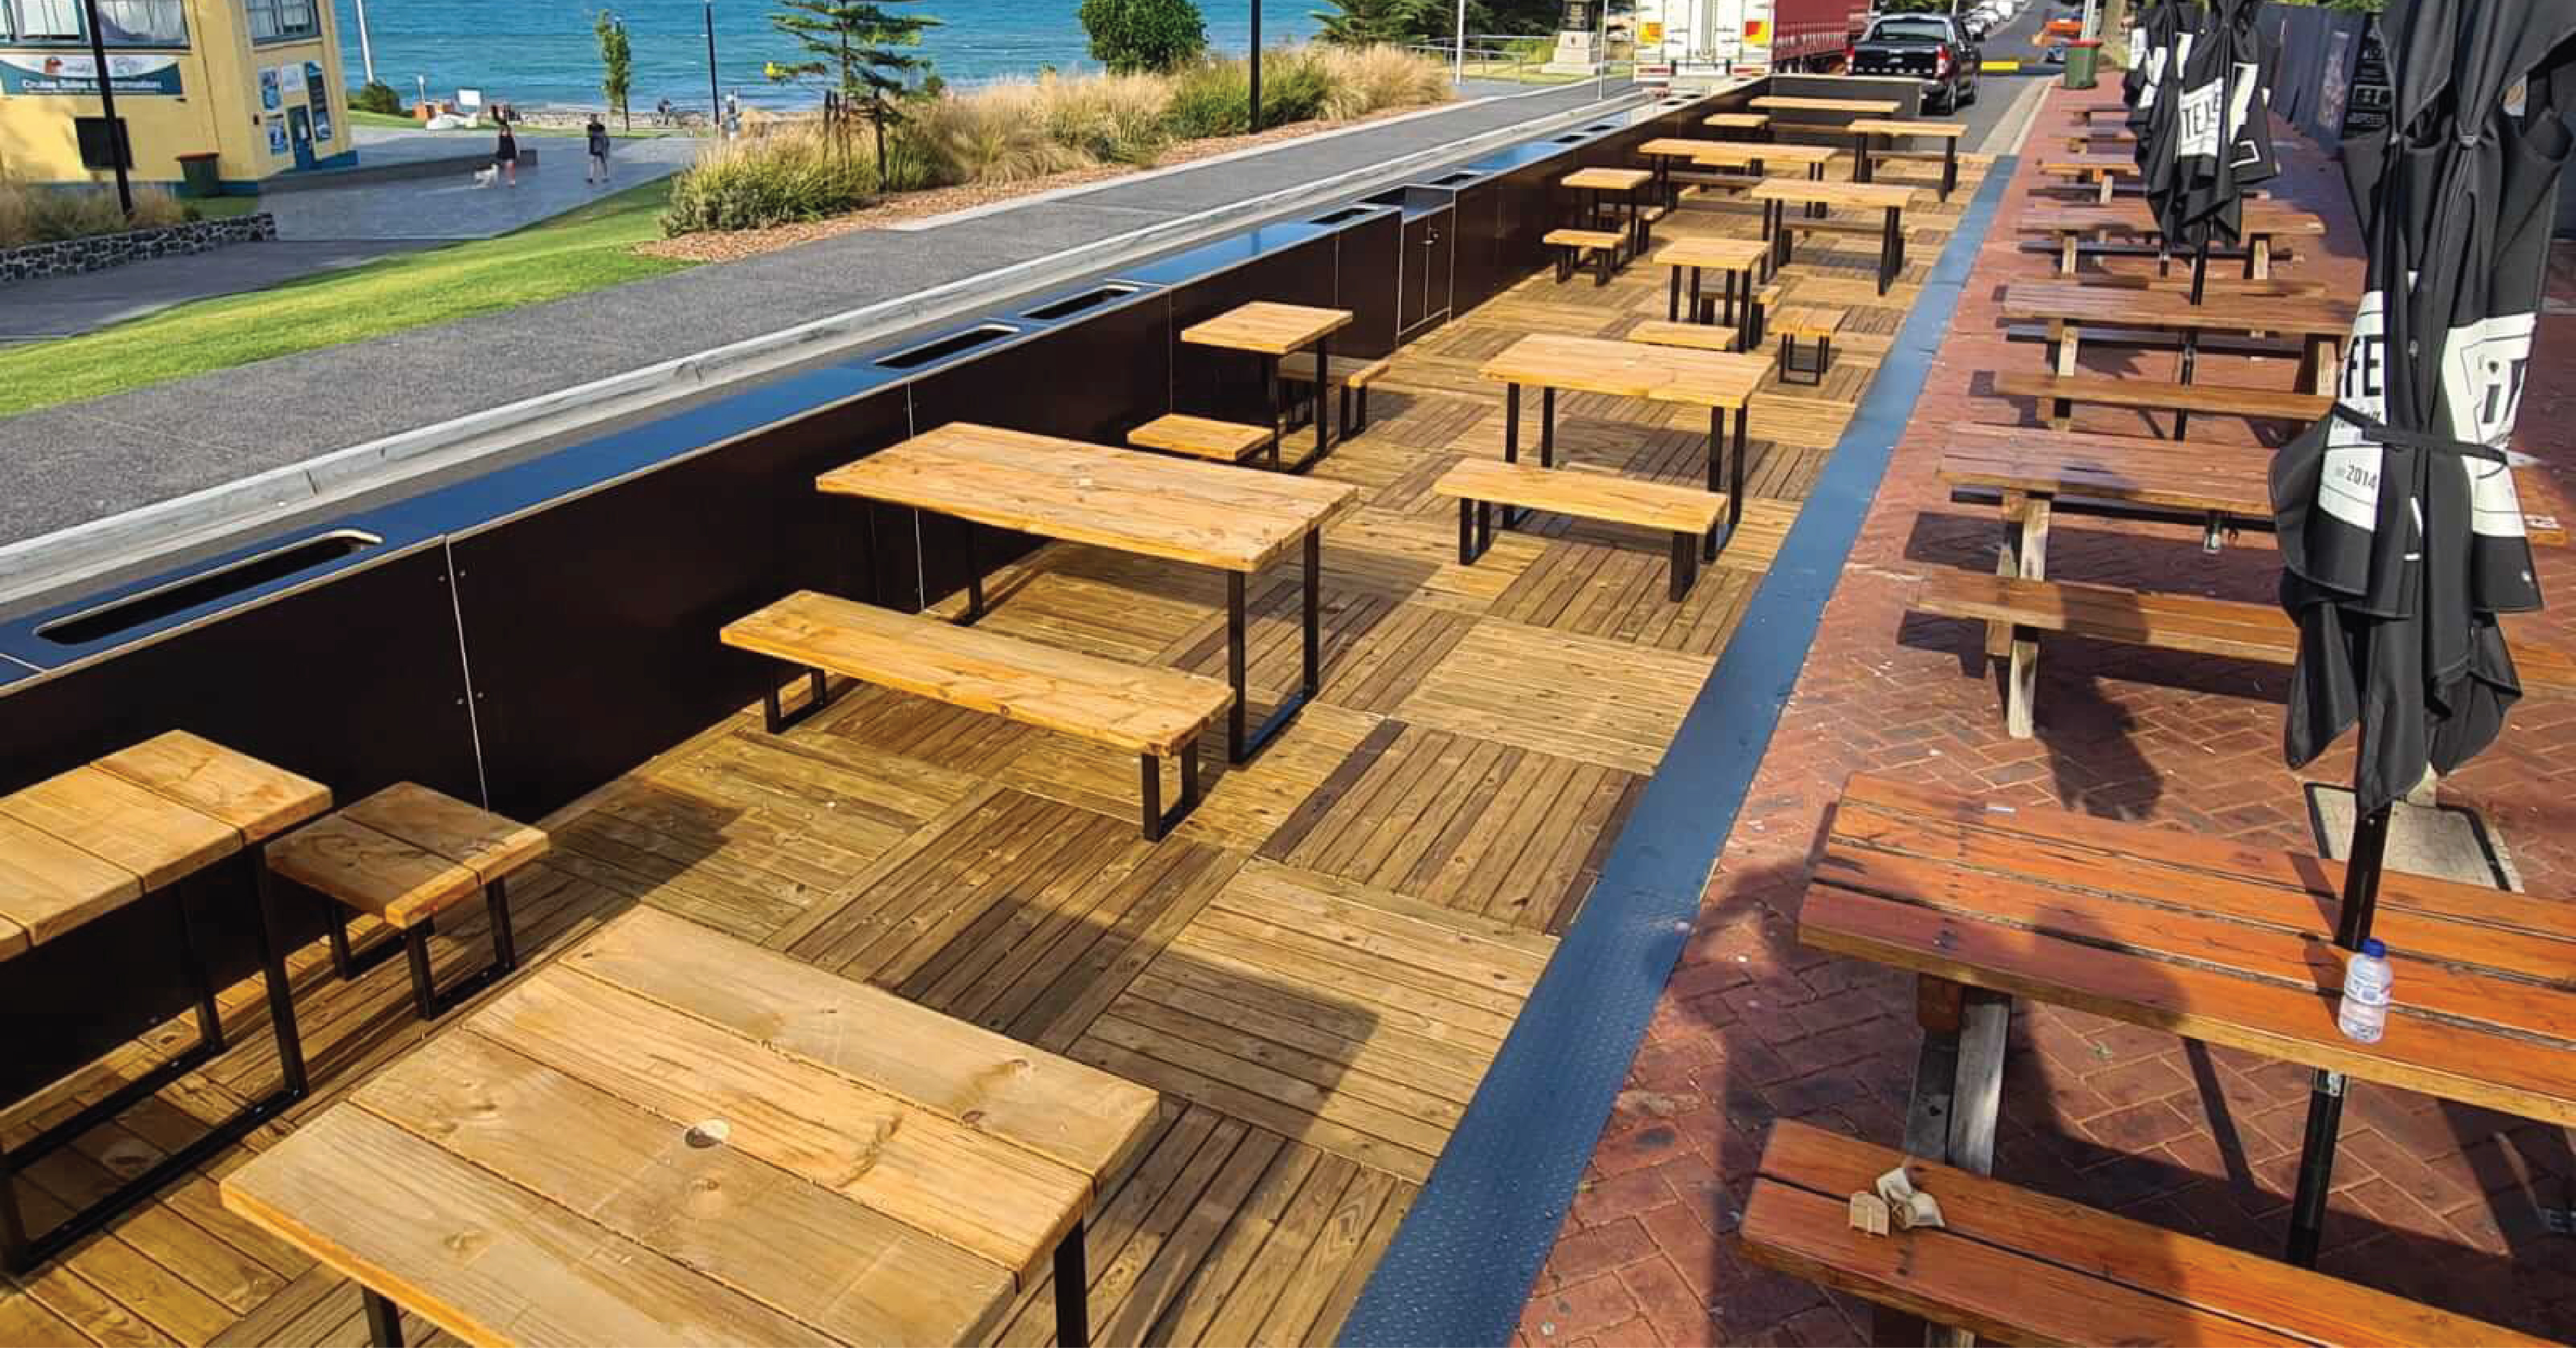 Parklet Outdoor Dining Extended in Melbourne...